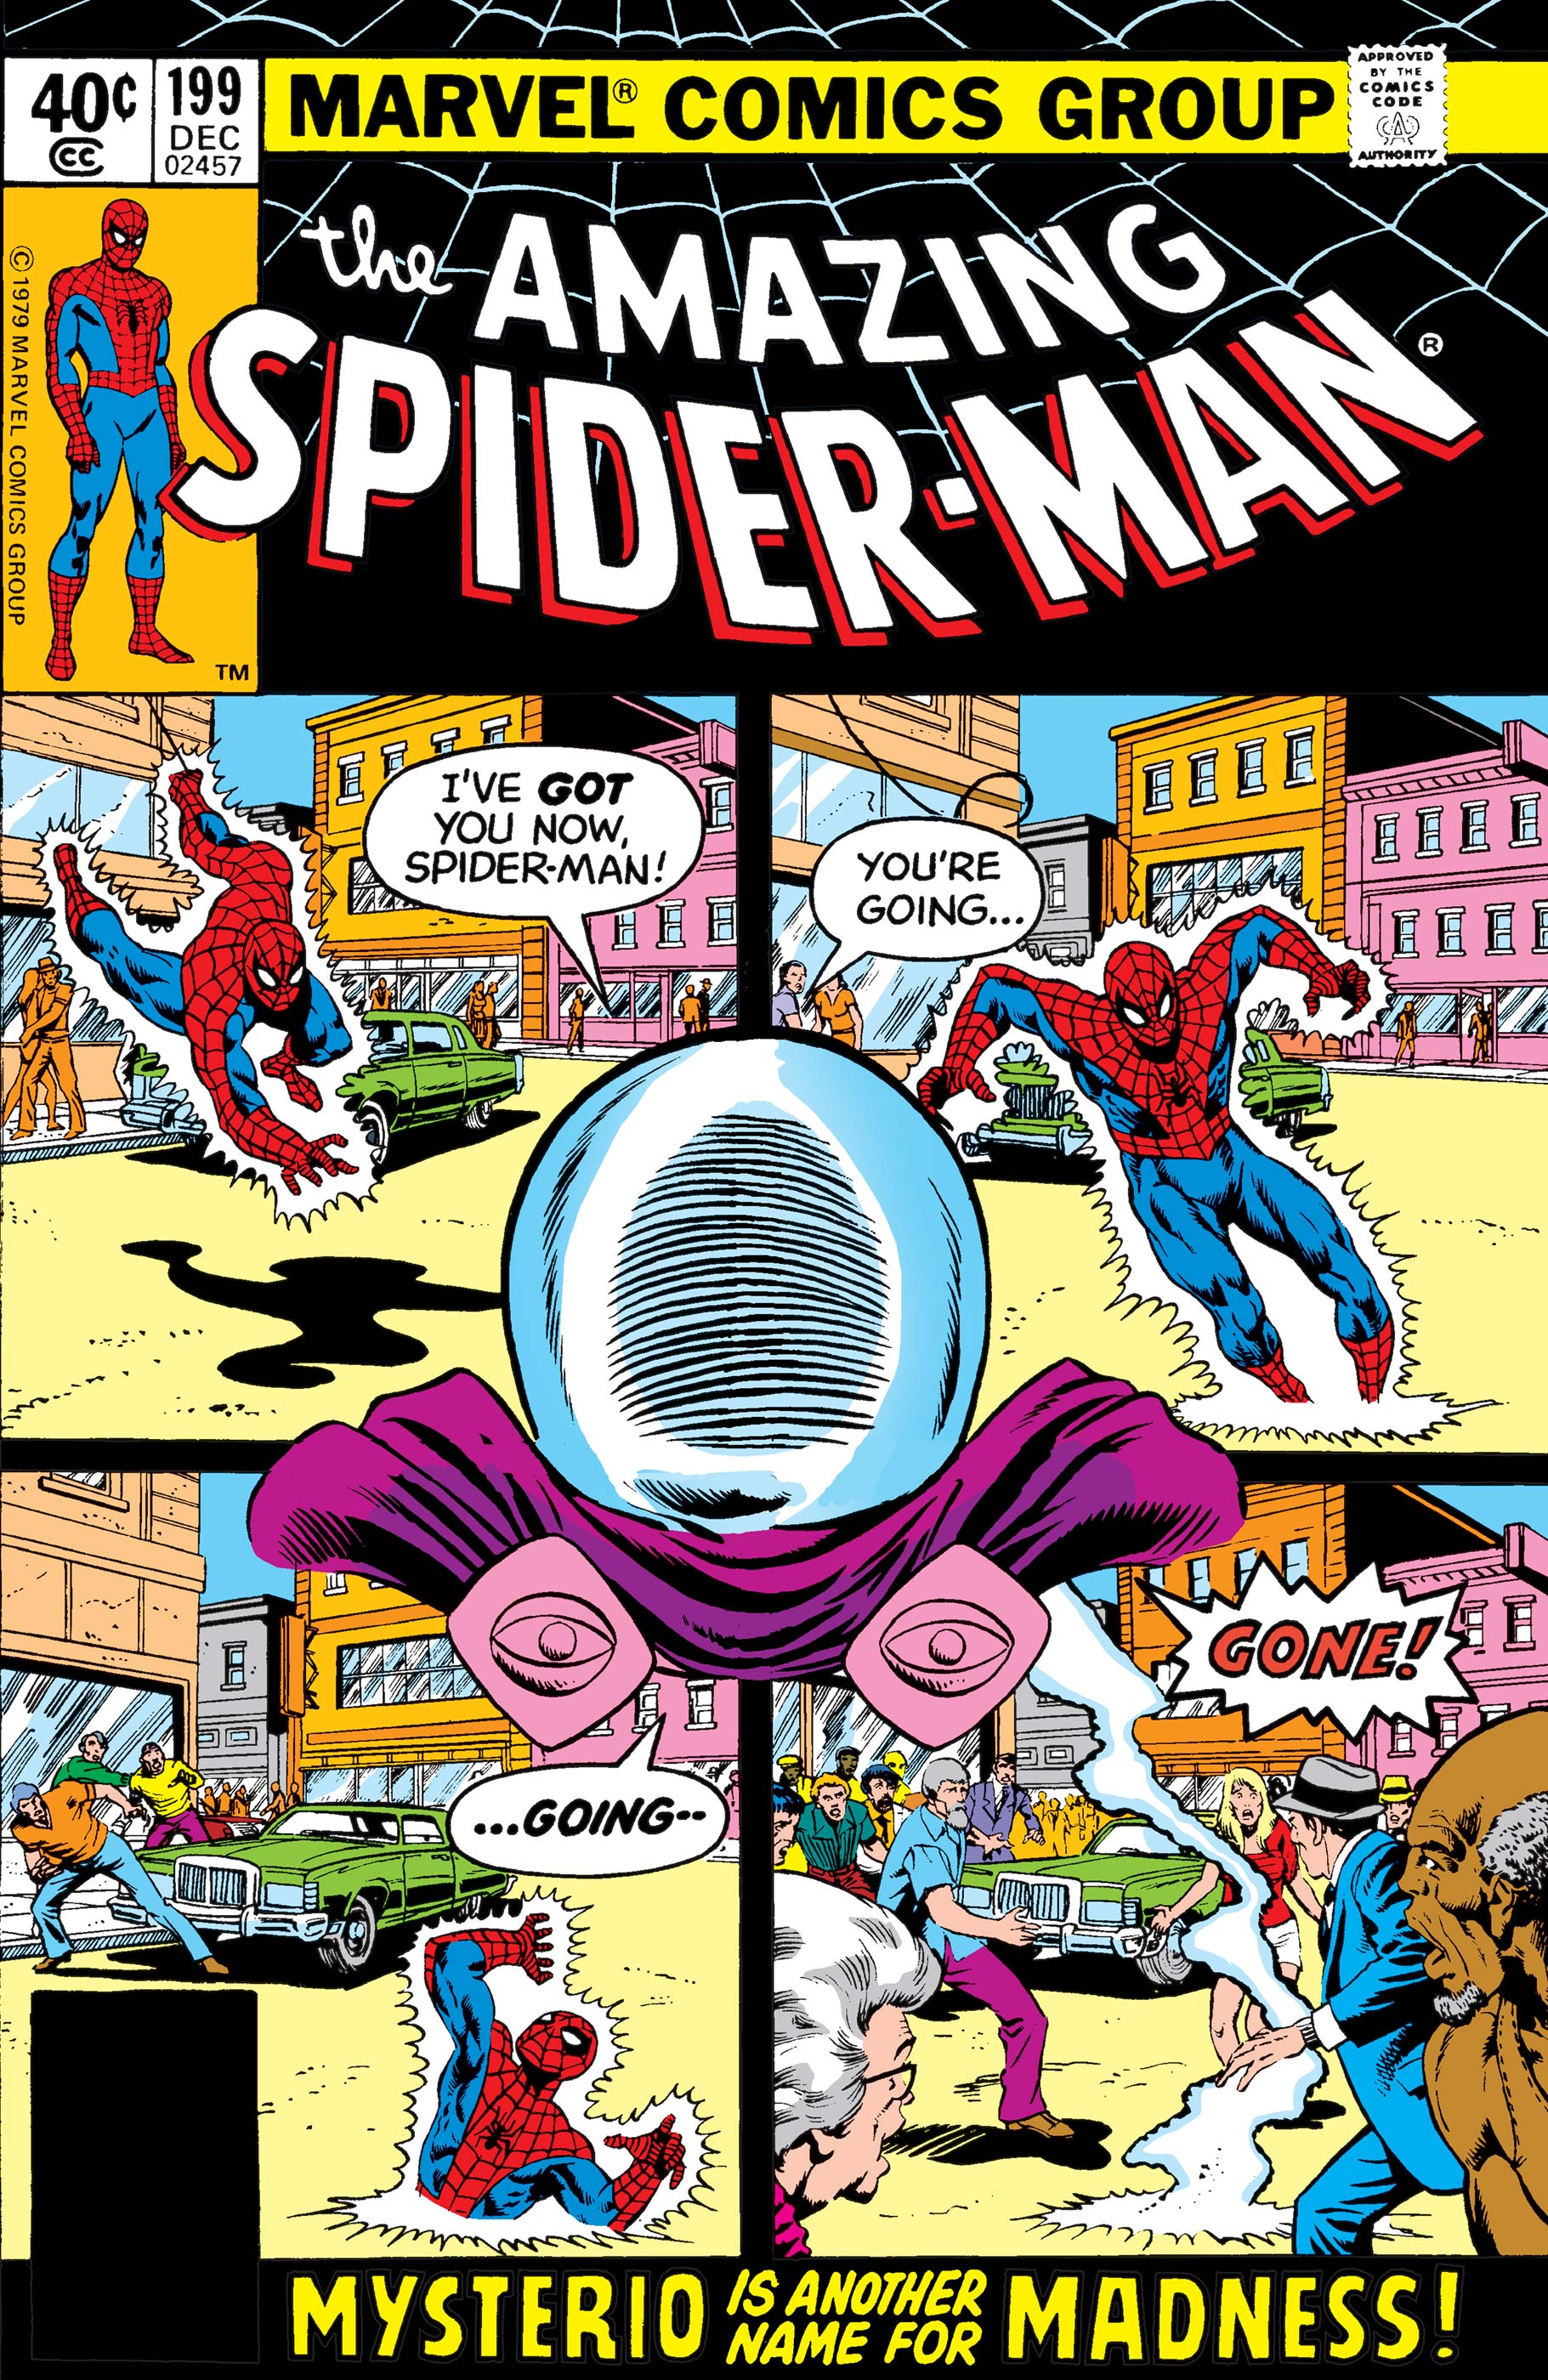 The Amazing Spider-Man (1963) #199